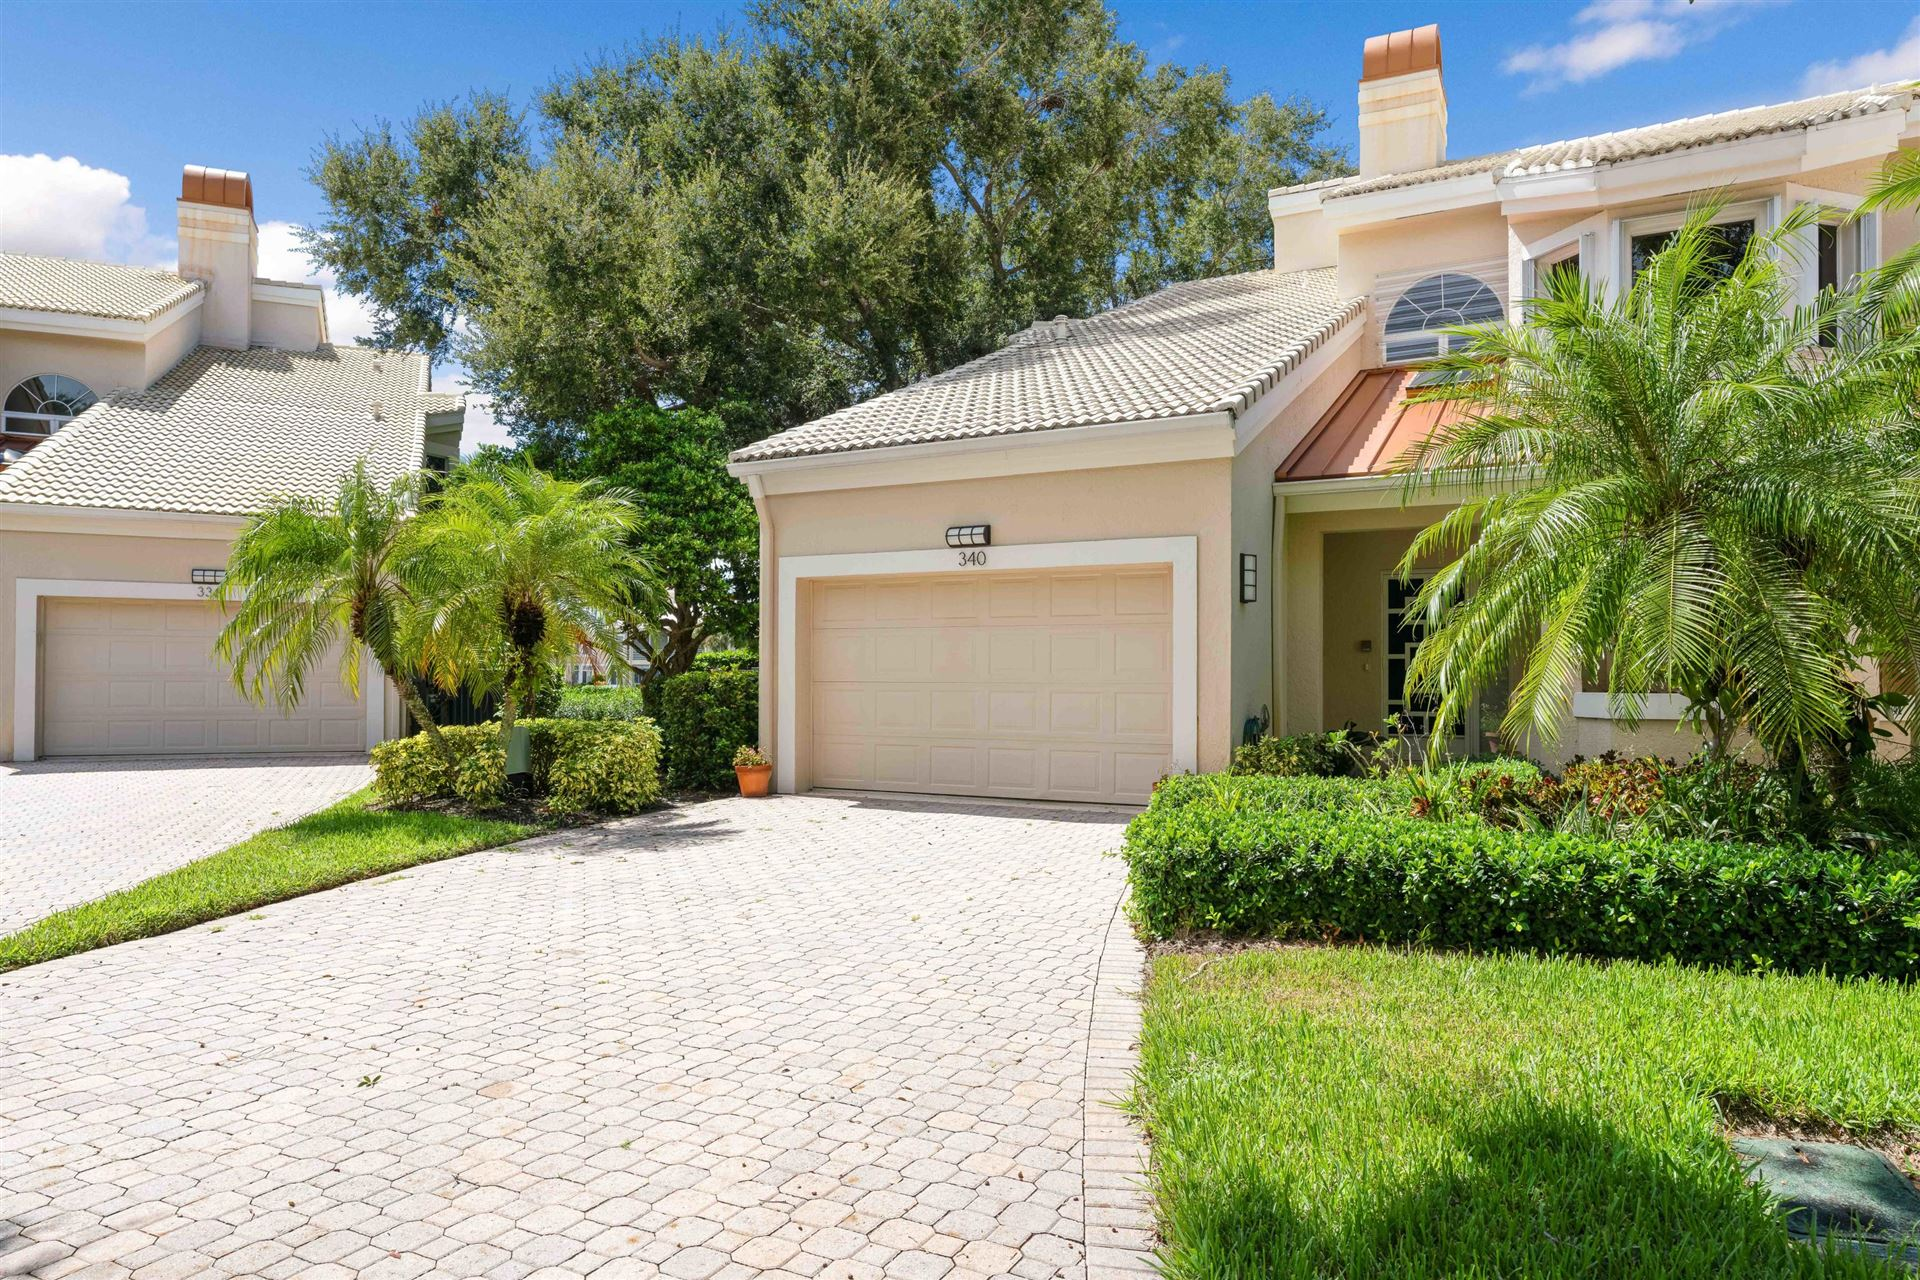 Photo of 340 Spyglass Way, Jupiter, FL 33477 (MLS # RX-10659597)